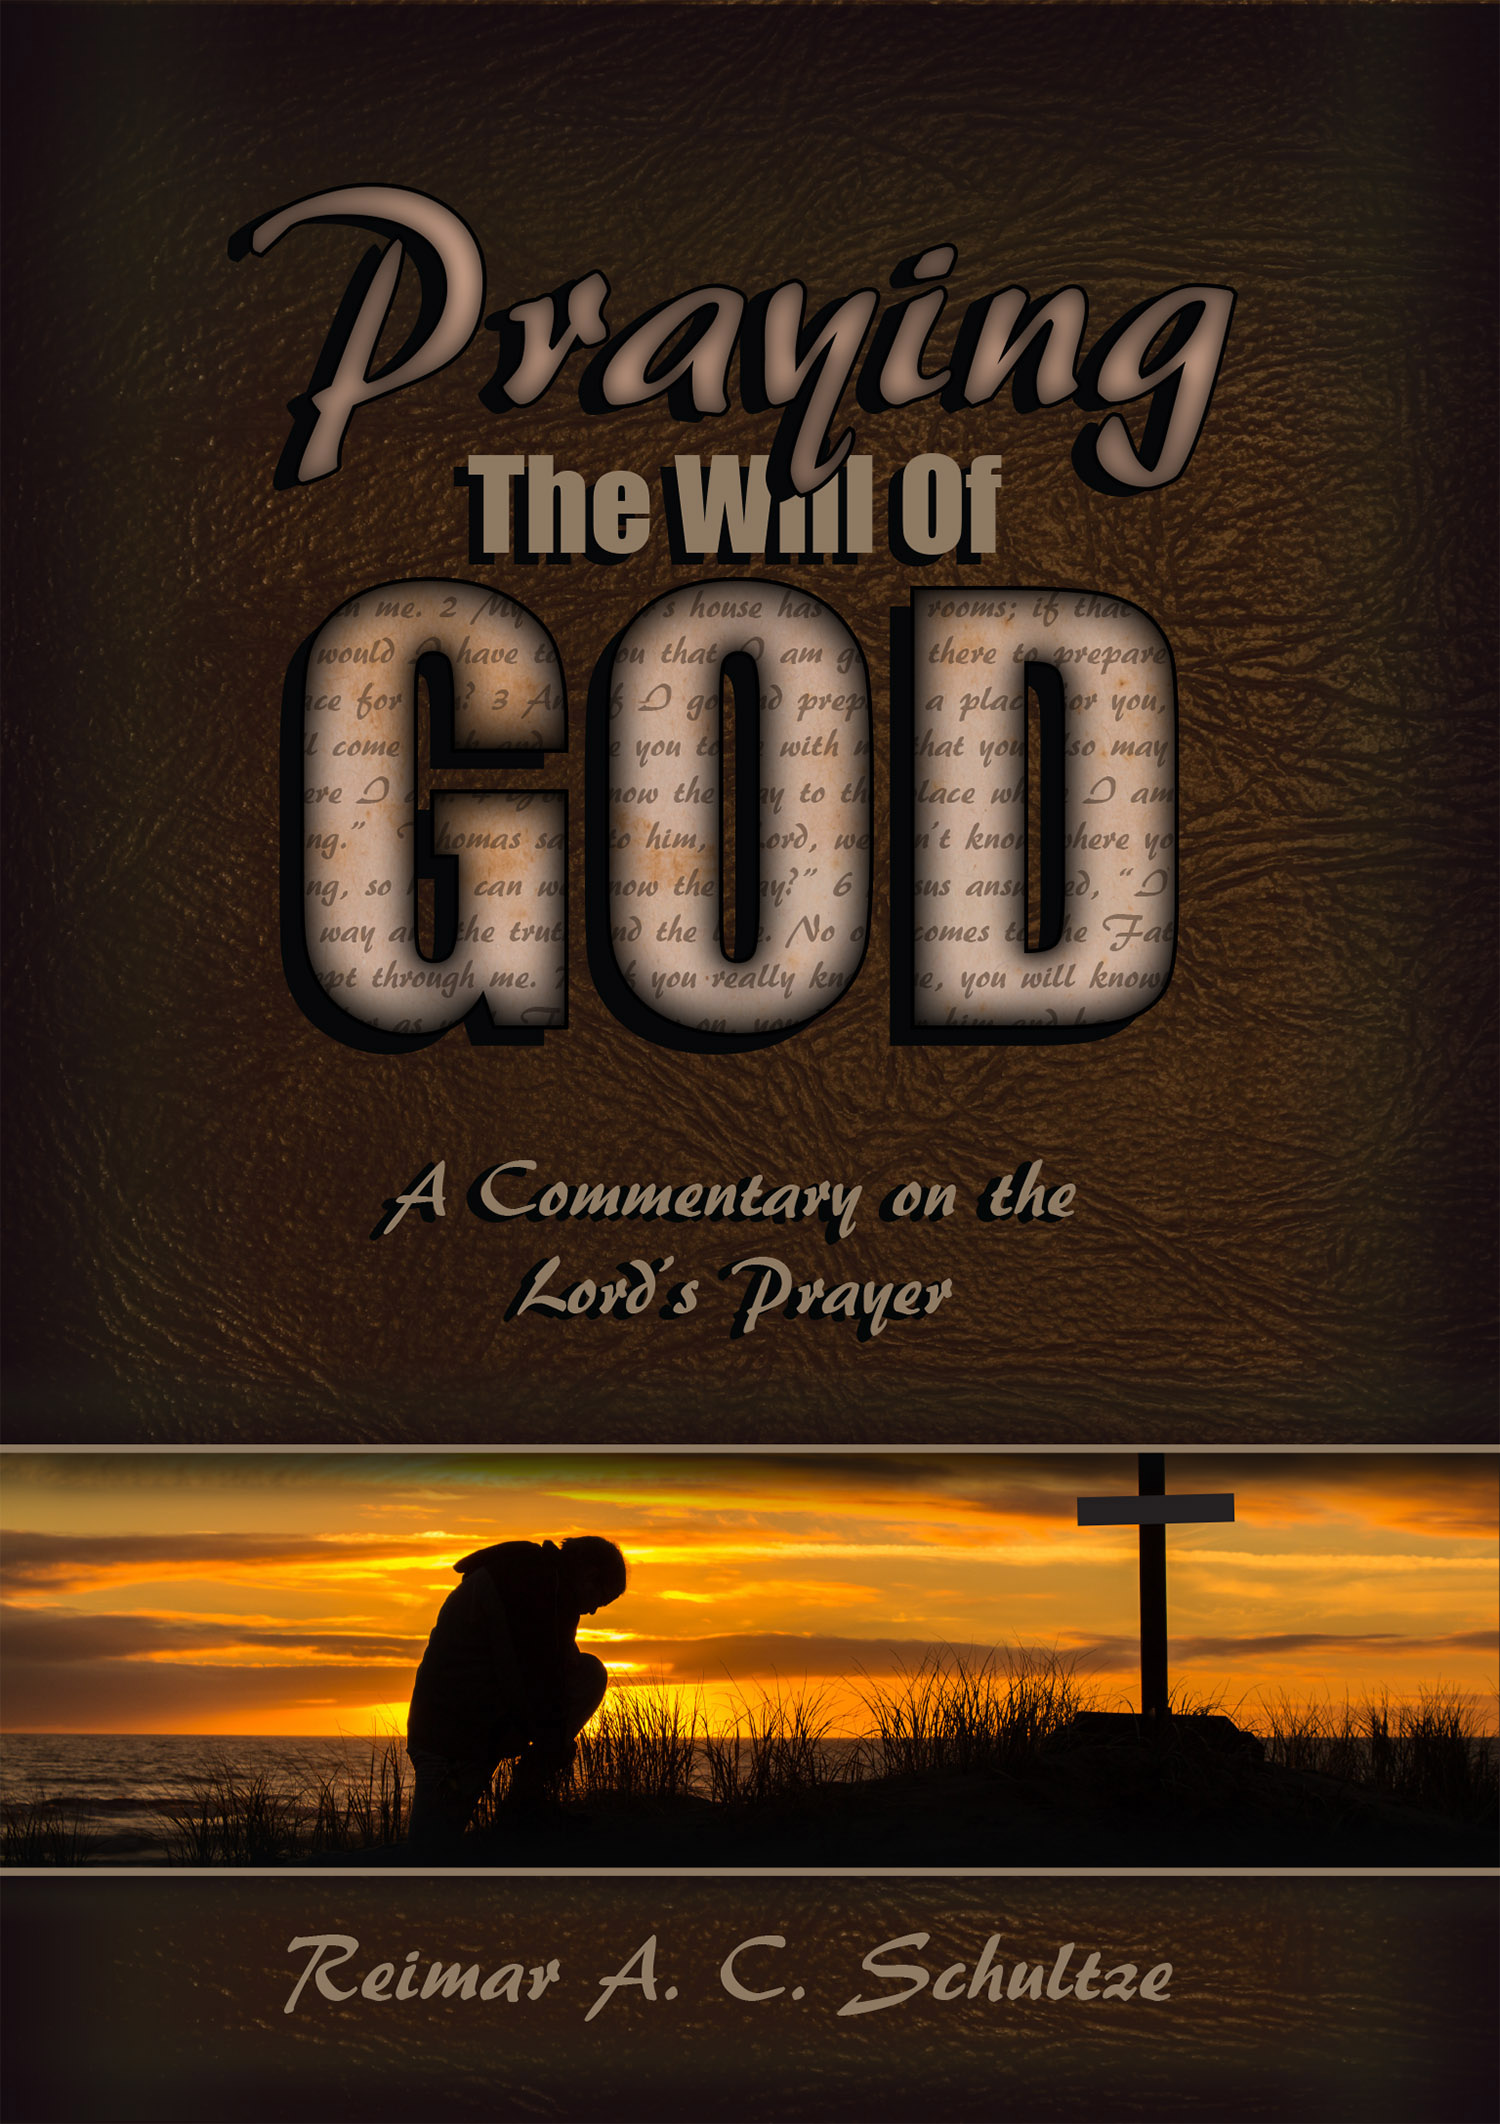 Praying the Will of God: A Commentary on the Lord's Prayer by Reimar A. C. Schultze